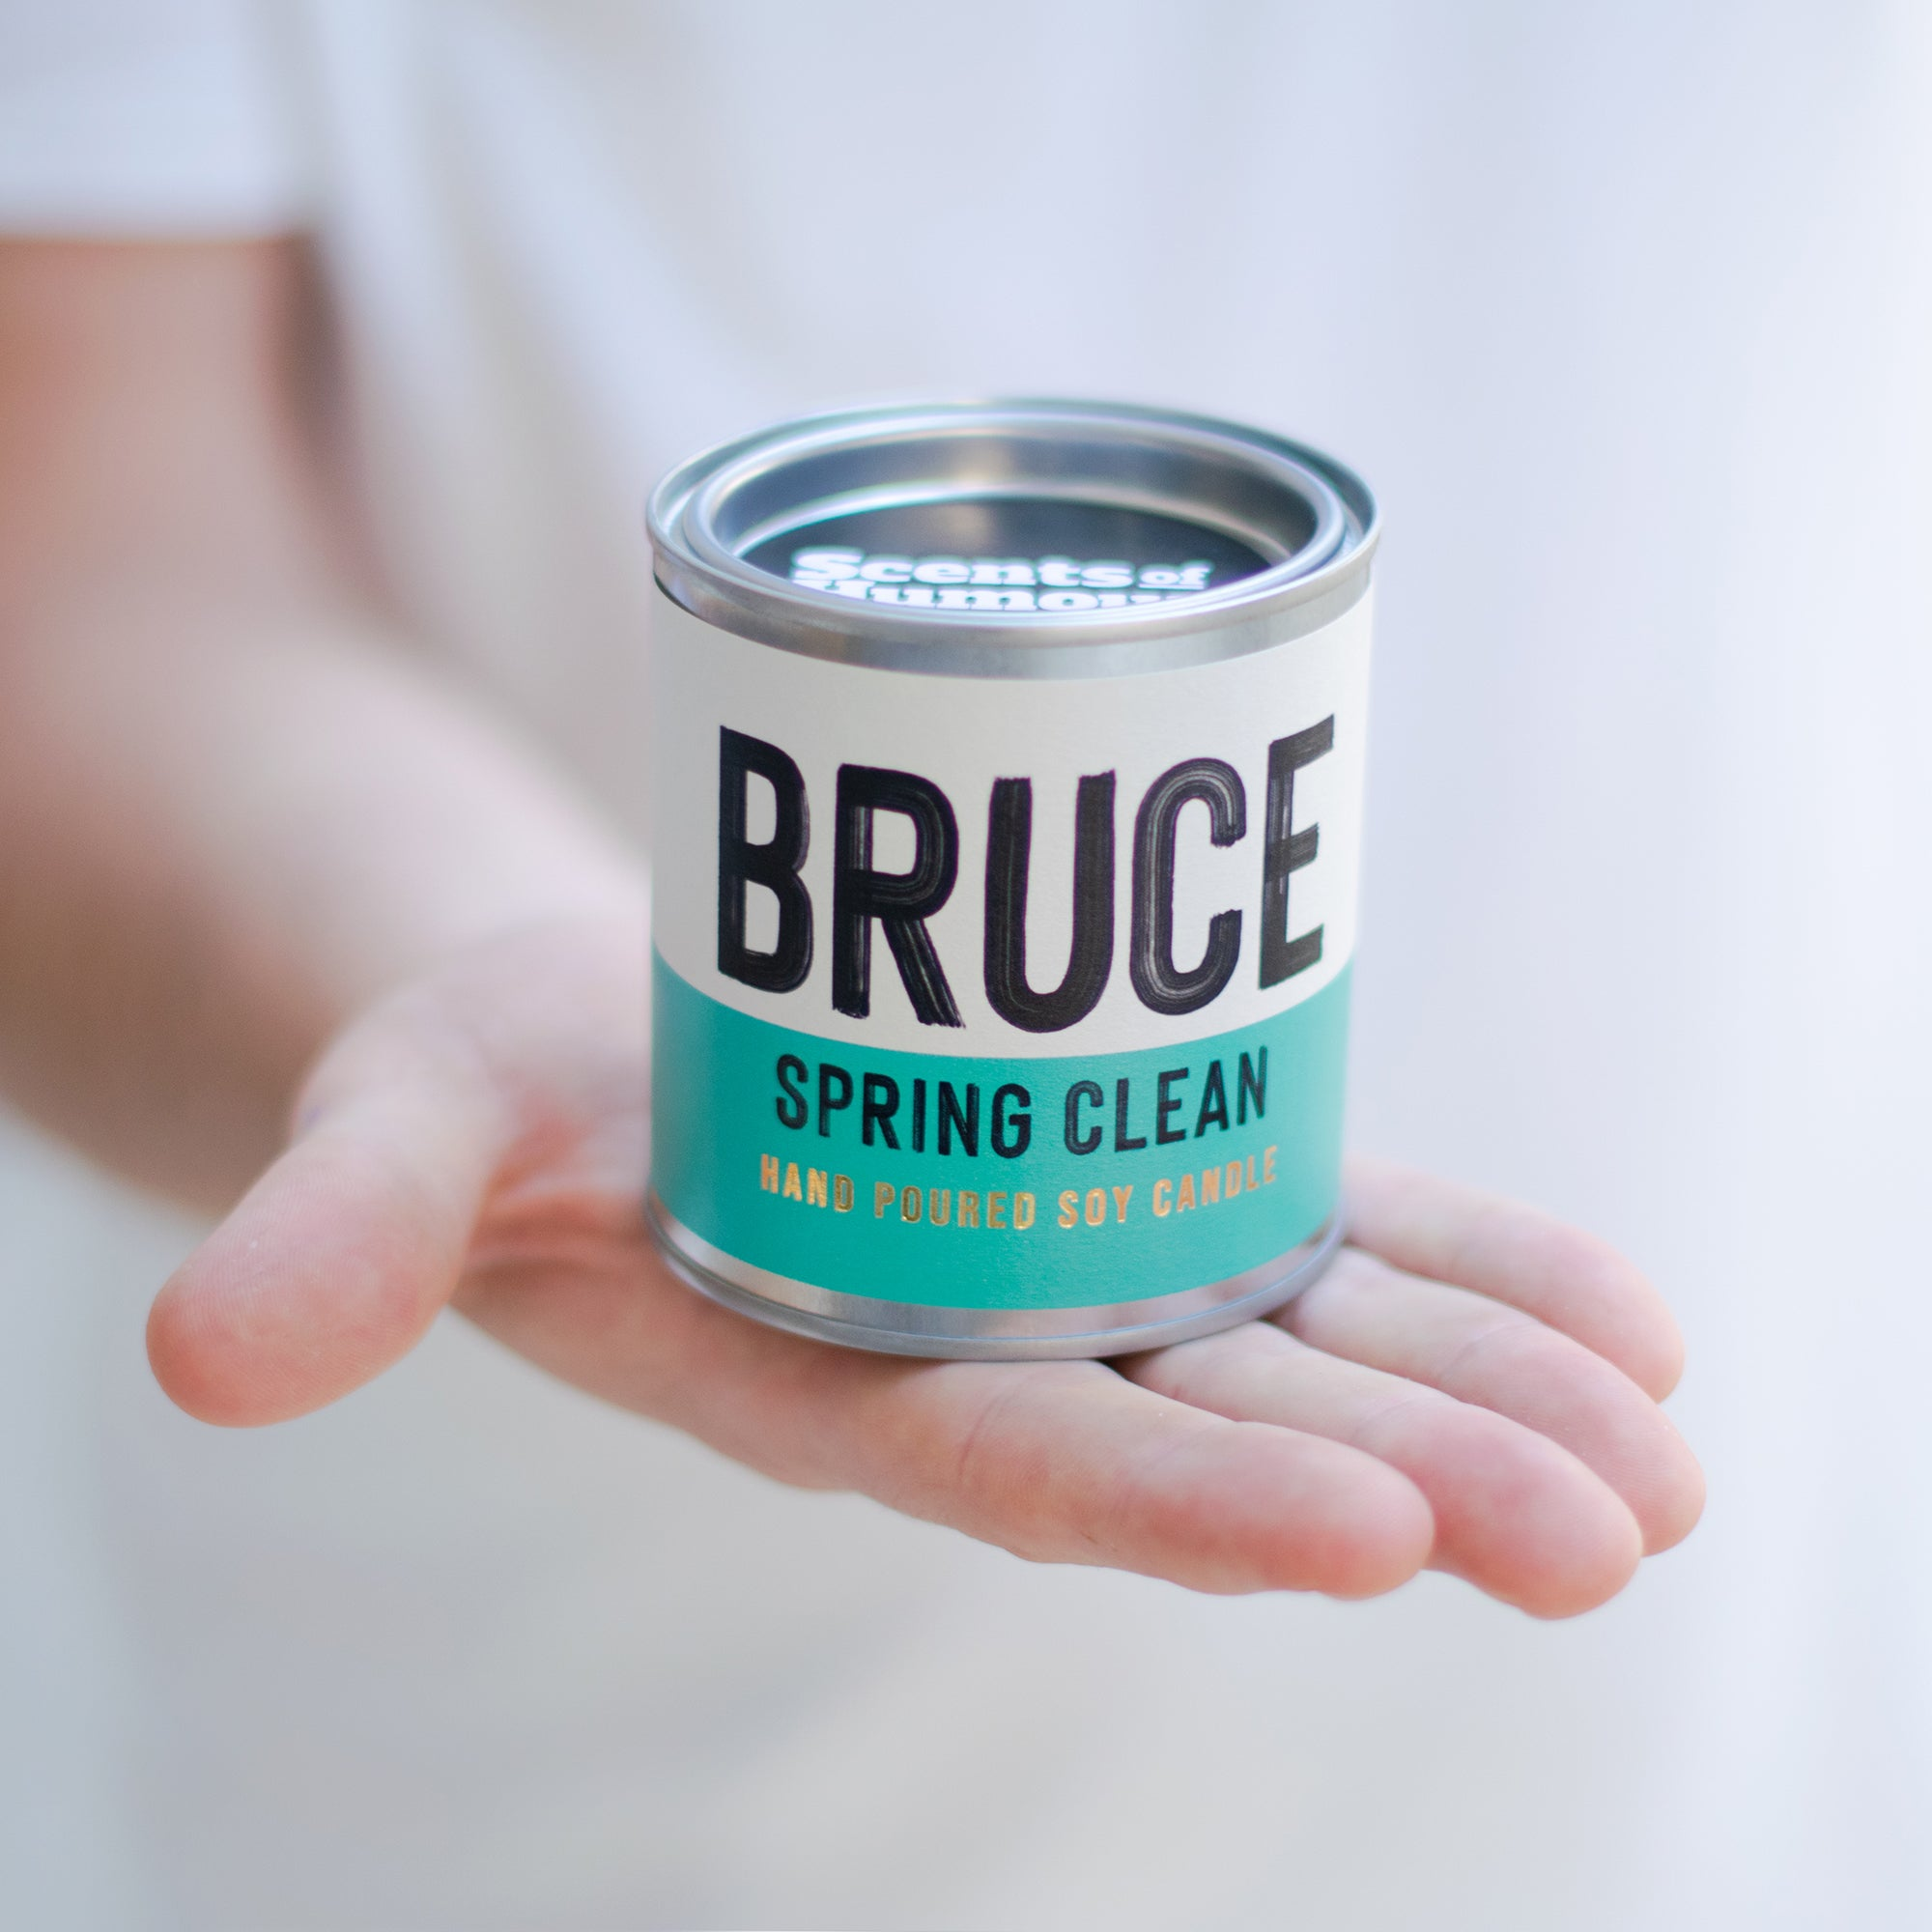 Bruce Spring Clean - Fresh cotton scented candle